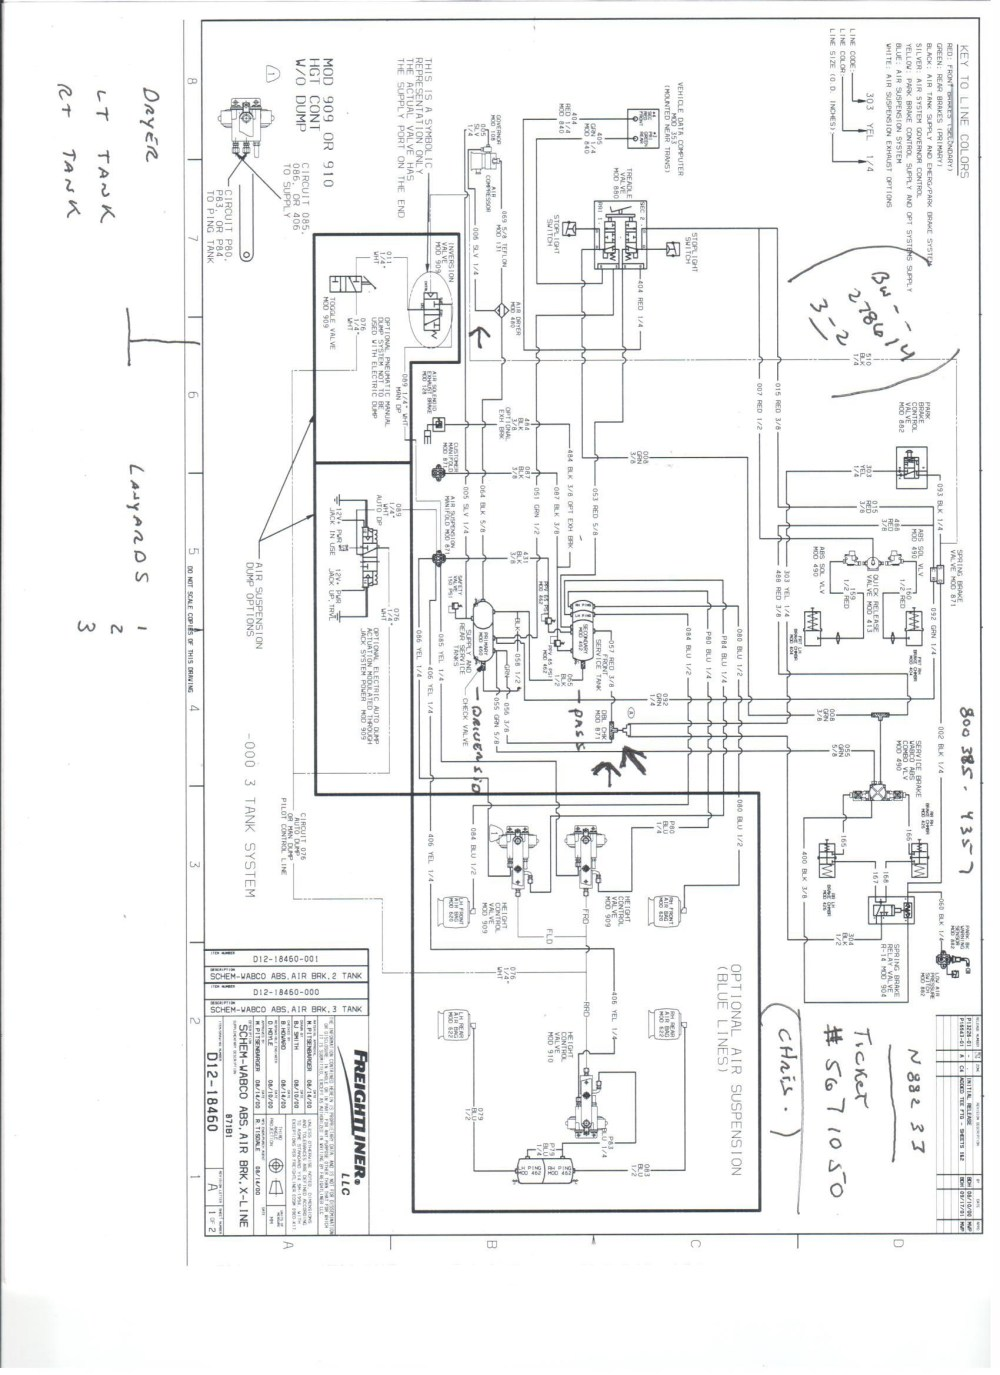 medium resolution of fleetwood revolution wiring diagrams wiring diagram2004 revolution wiring diagram wiring diagram fleetwood revolution